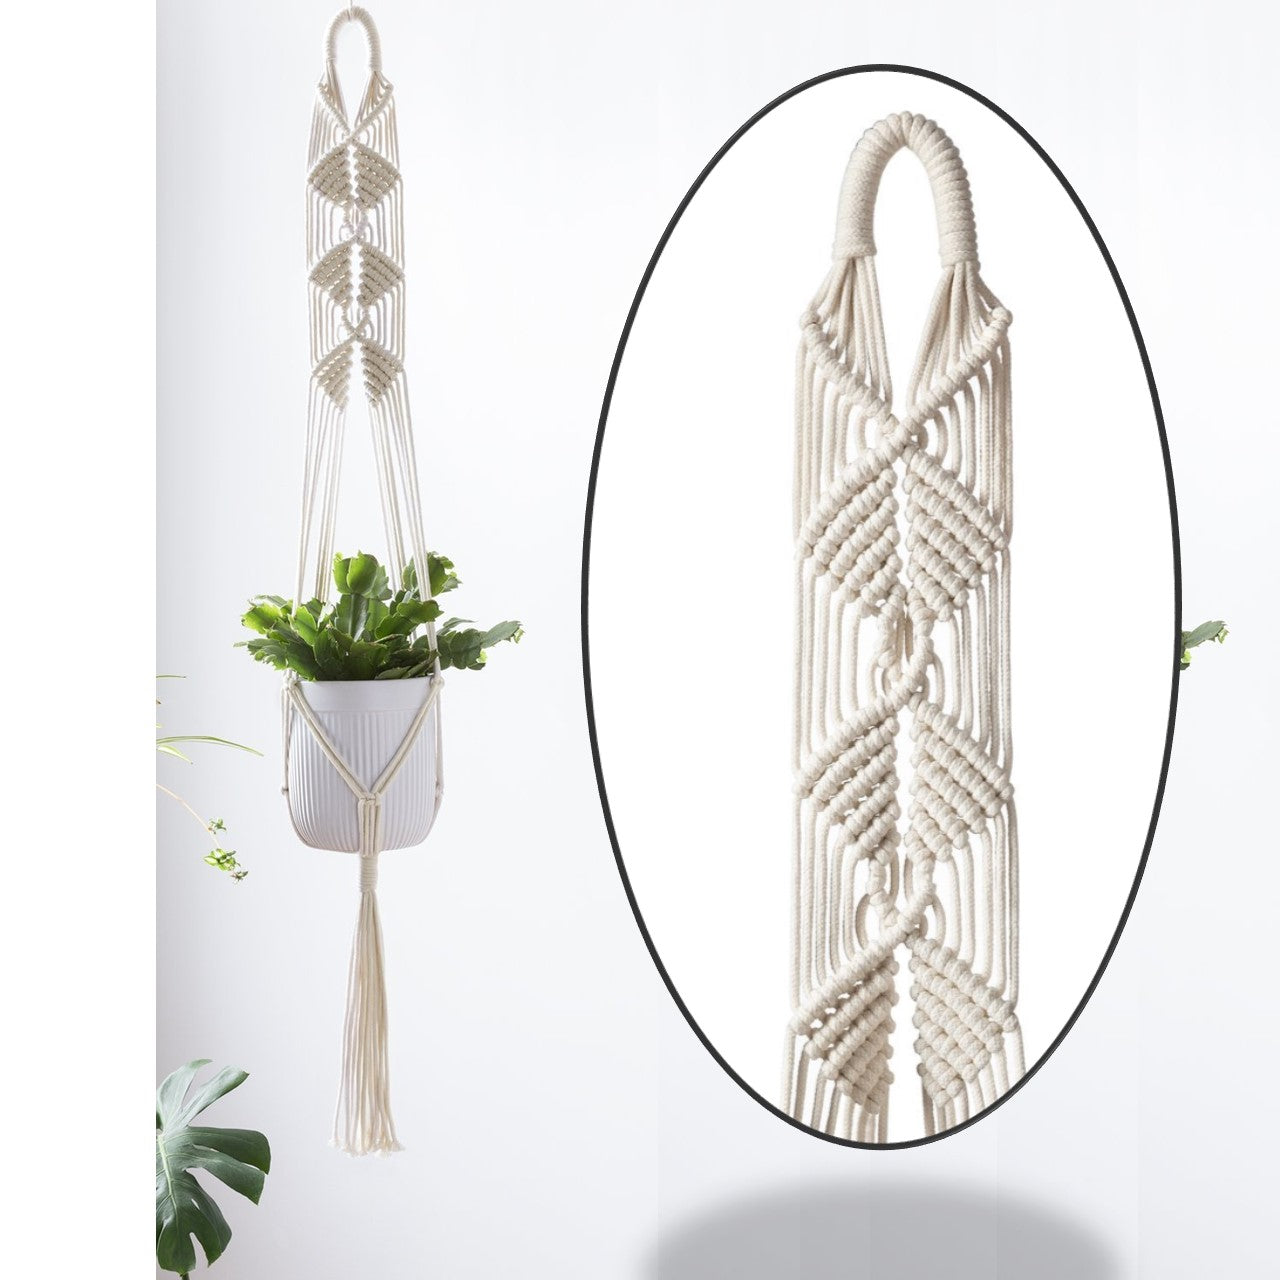 ecofynd Macrame Cotton Plant Wall Hanger [WITHOUT POT], 1 Pack - Ecofynd Online Home and Garden Store